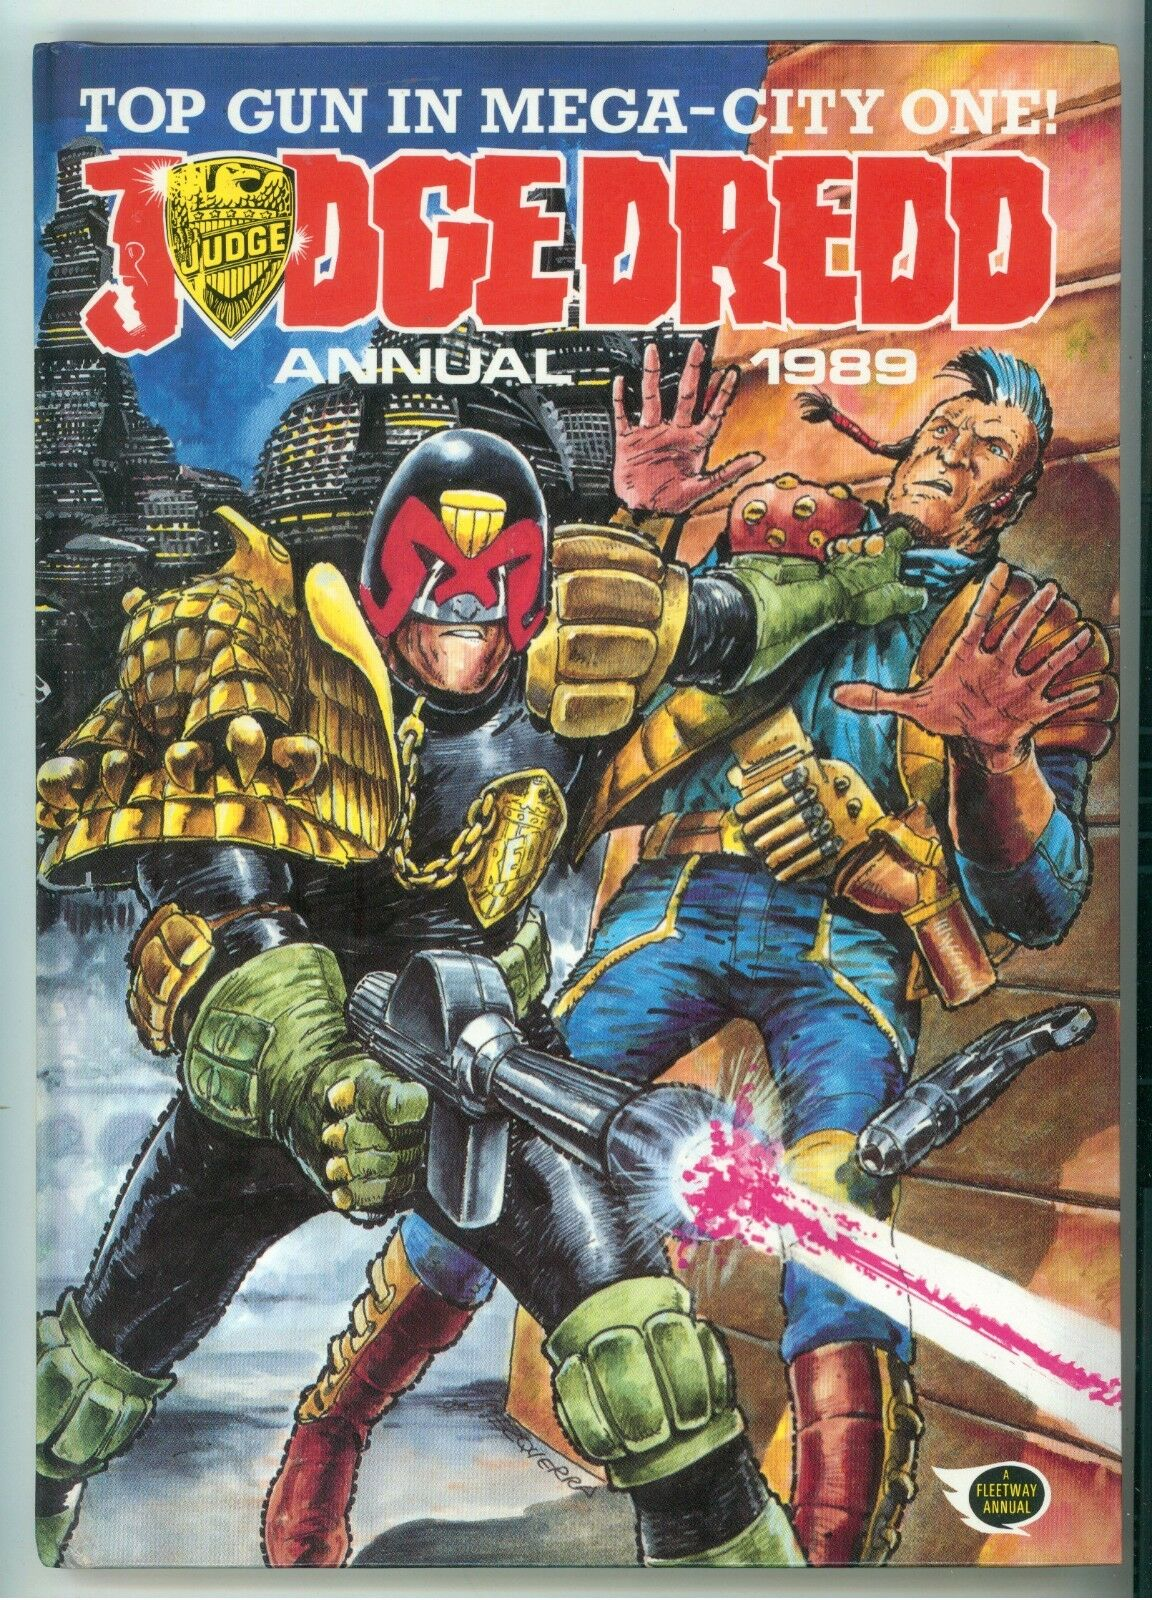 JUDGE DREDD ANNUAL 1989 FLEETWAY PUBLICATIONS 1988